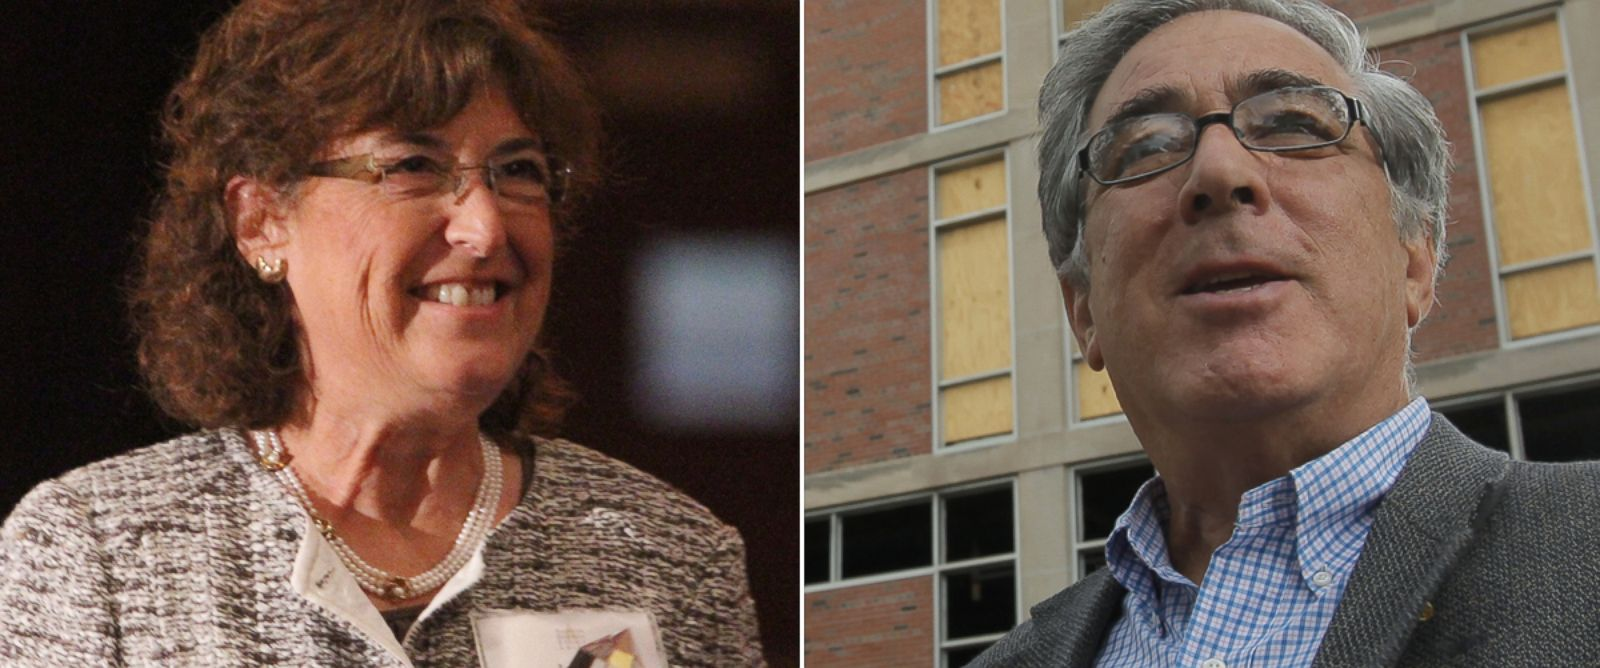 PHOTO: From left, Jane Glazer and Larry Glazer in Rochester, New York